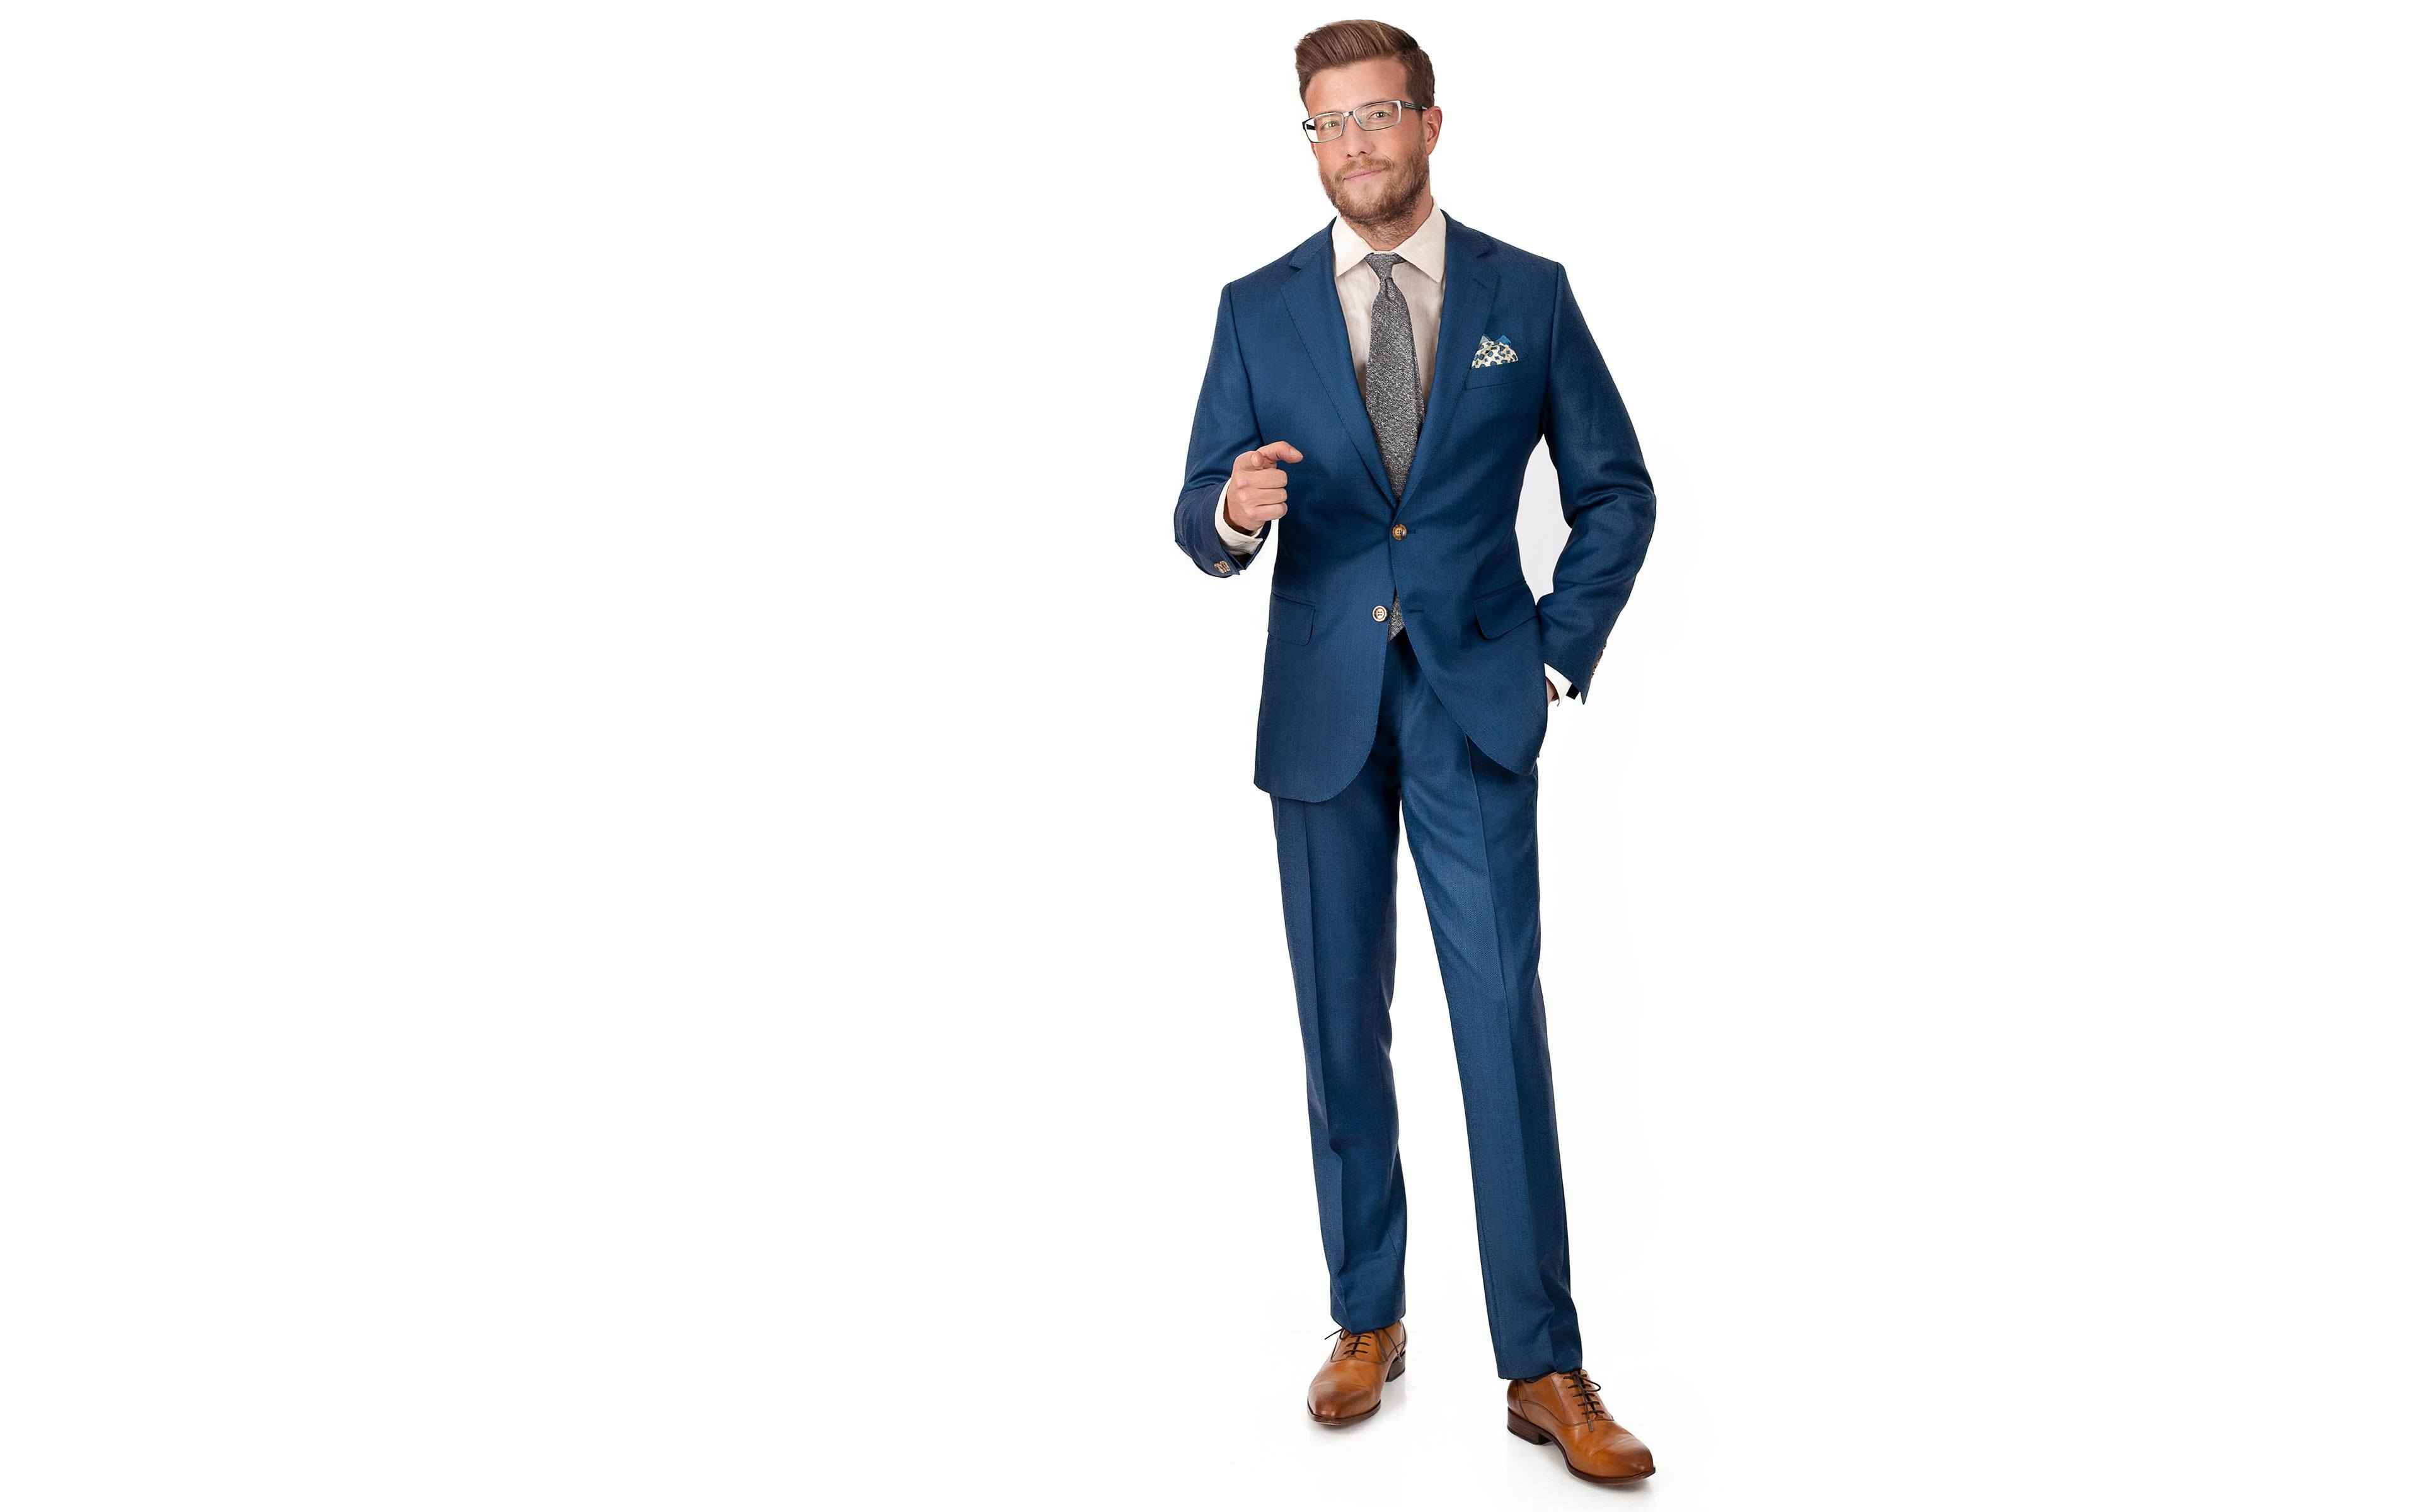 Teal Birdseye Suit